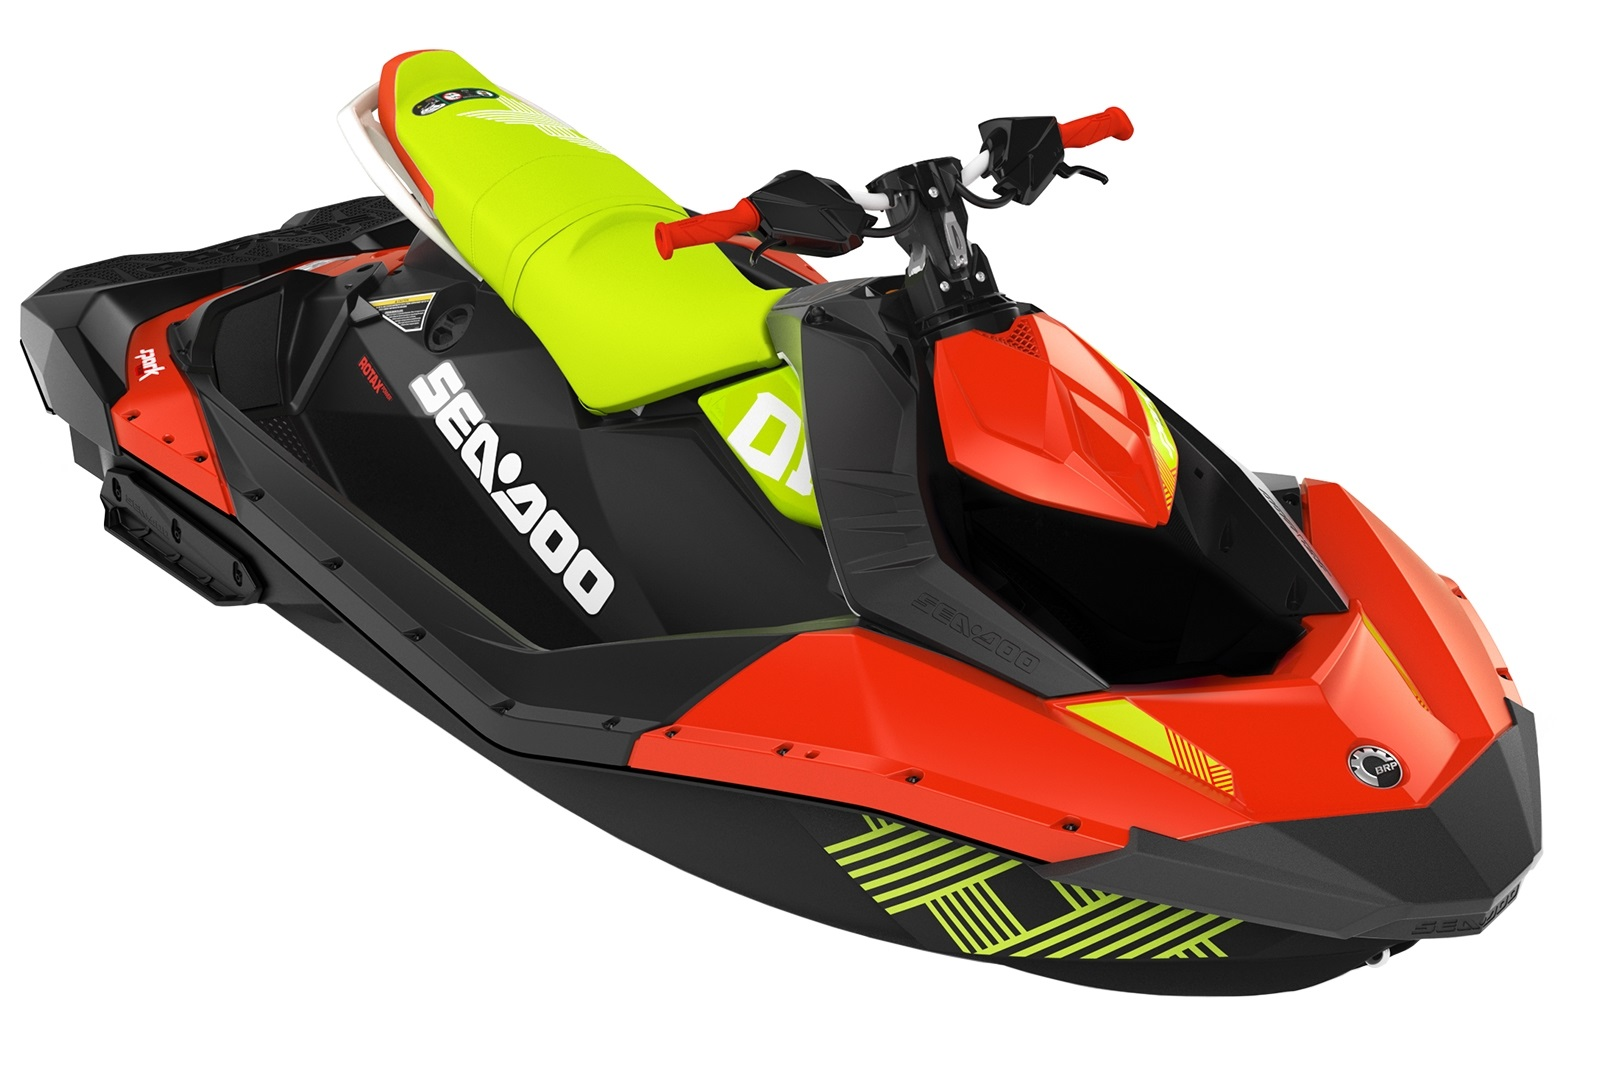 Sea Doo SPARK Trixx 900 HO ACE 3-up iBR 90hp zeleno-červený